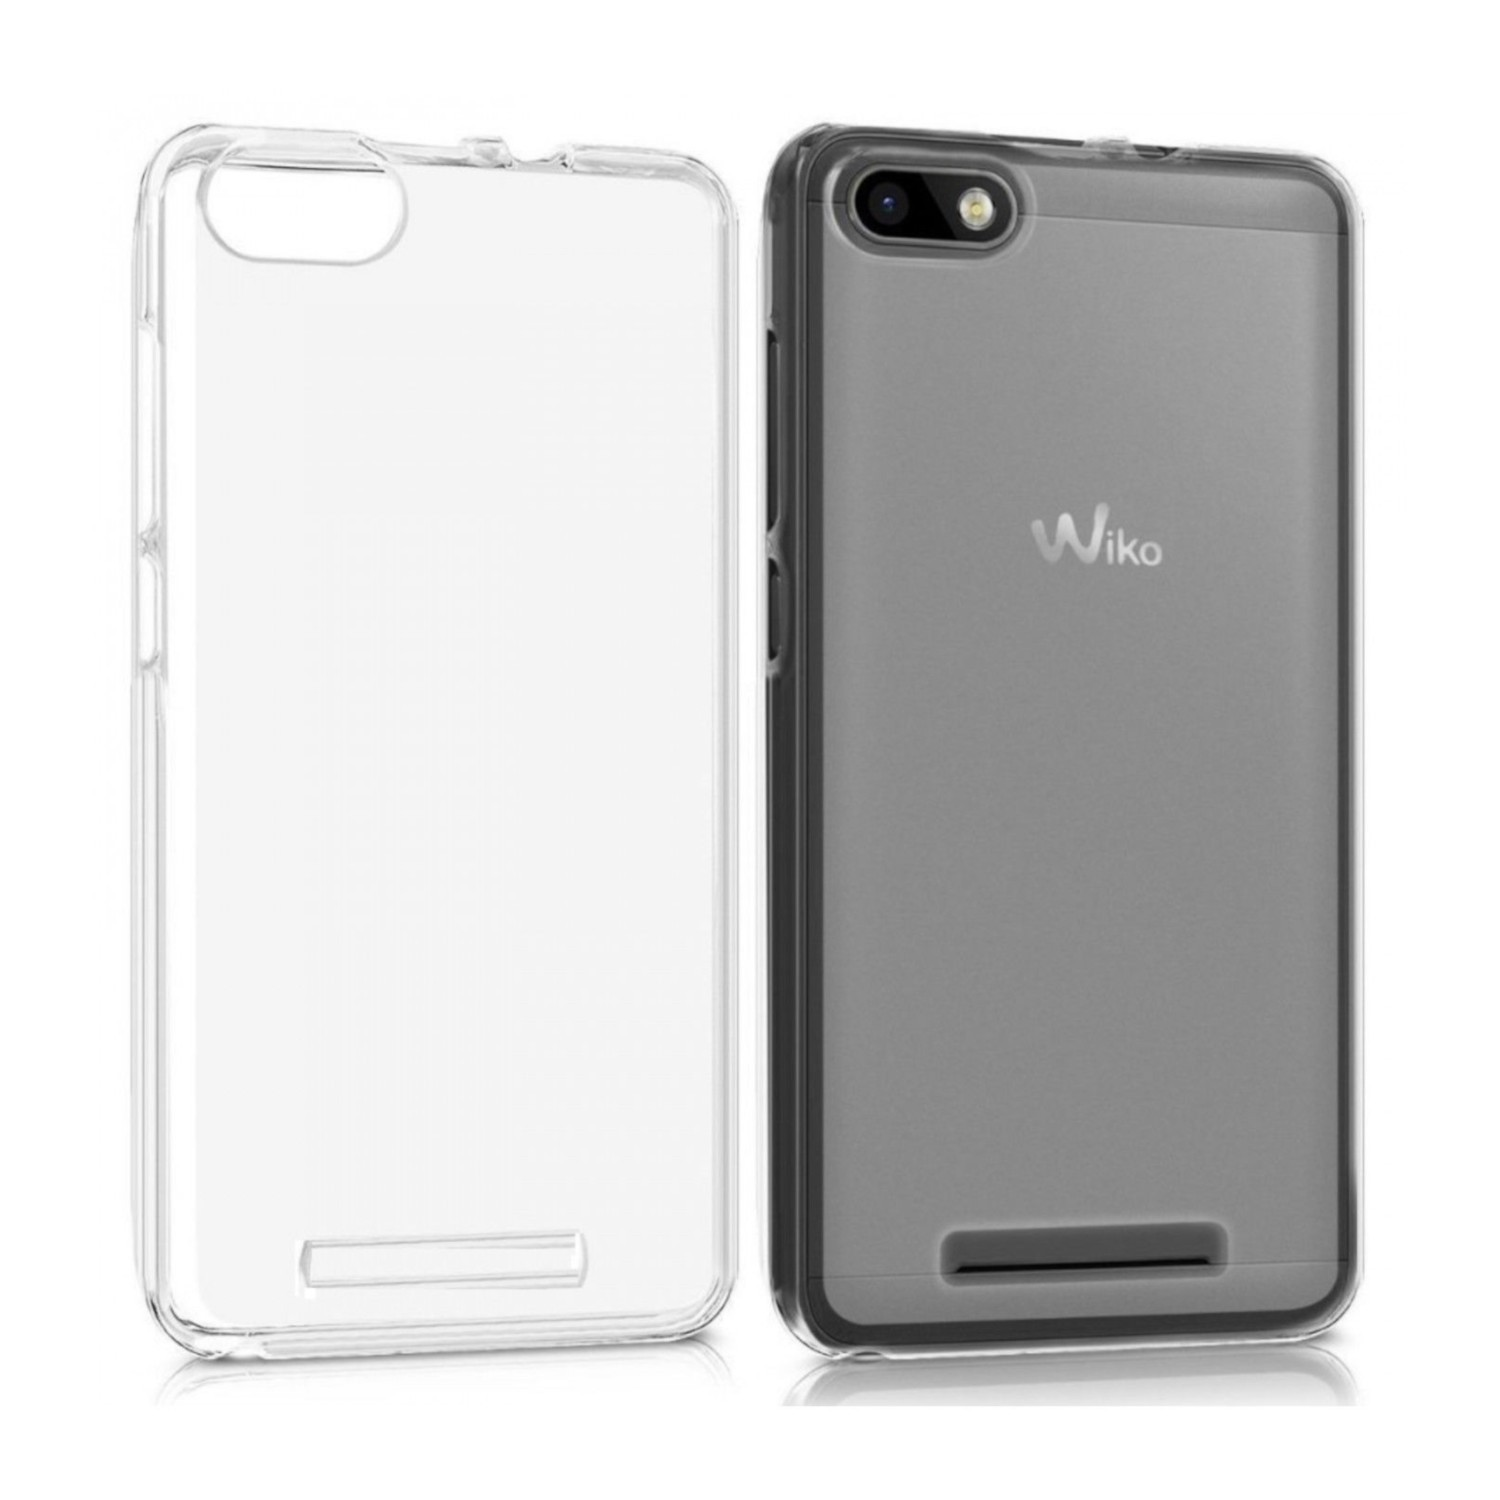 Funda Movil Jc Wiko Sunny 2 Silicona Mate Transparente